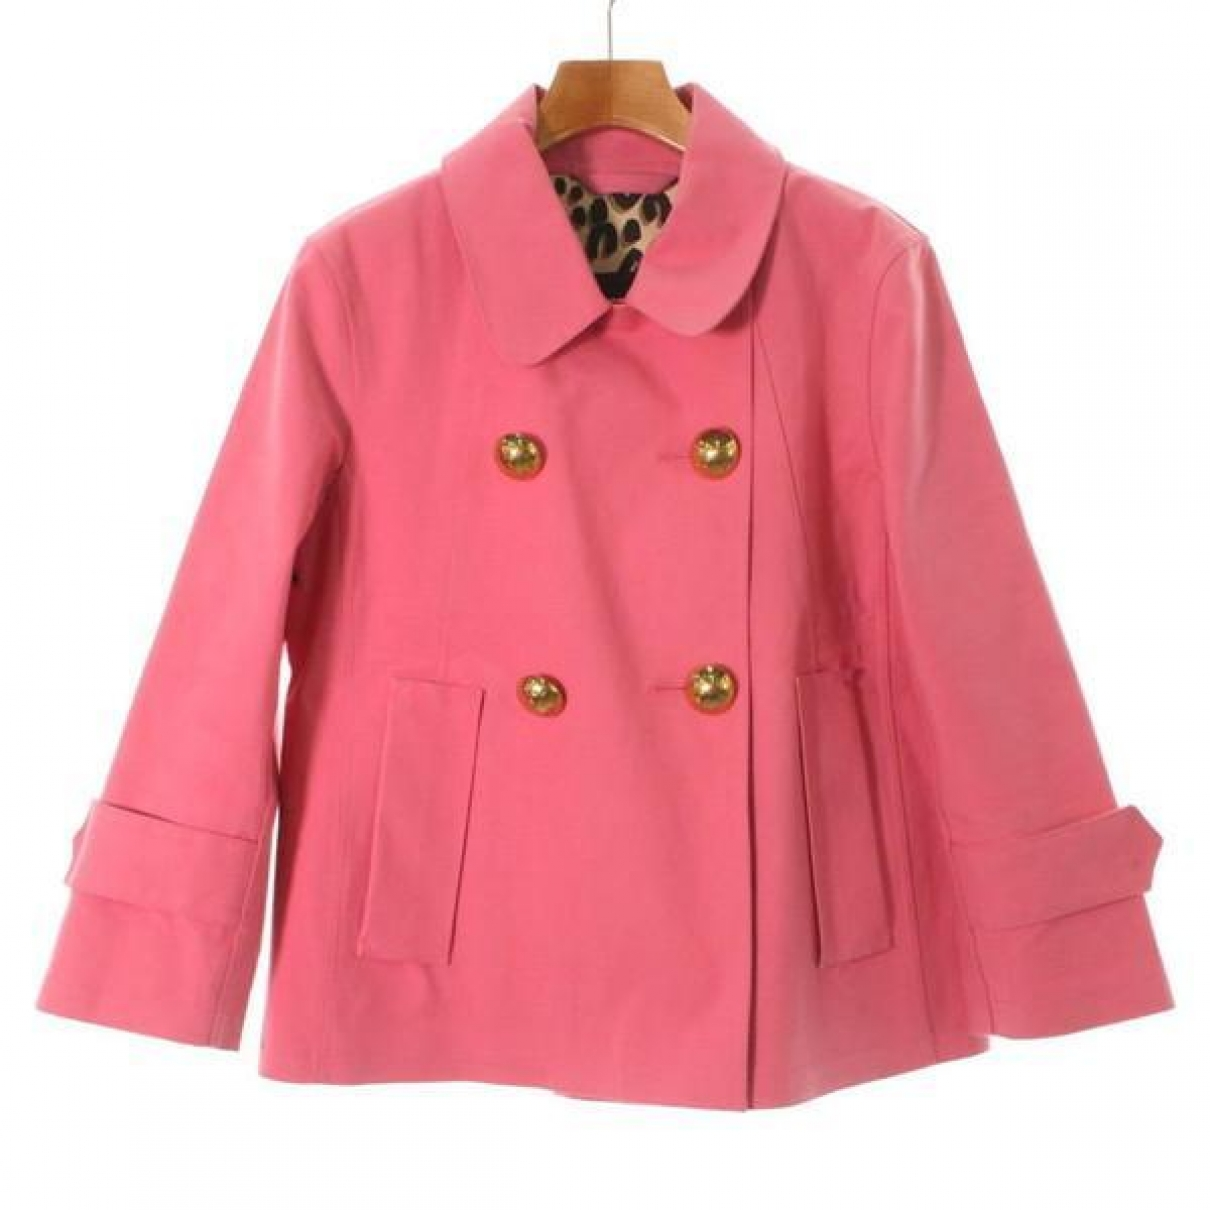 Louis Vuitton \N Jacke in  Rosa Baumwolle